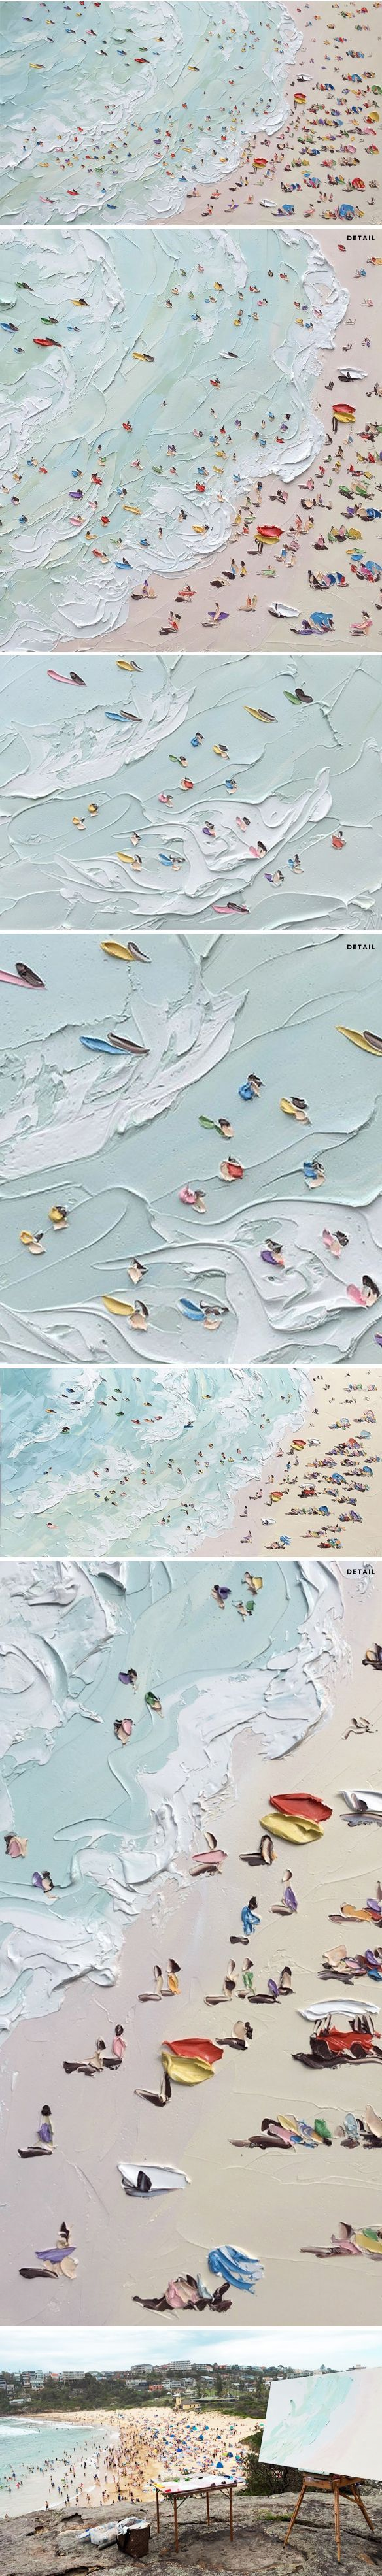 Stunning paintings by Sally West.